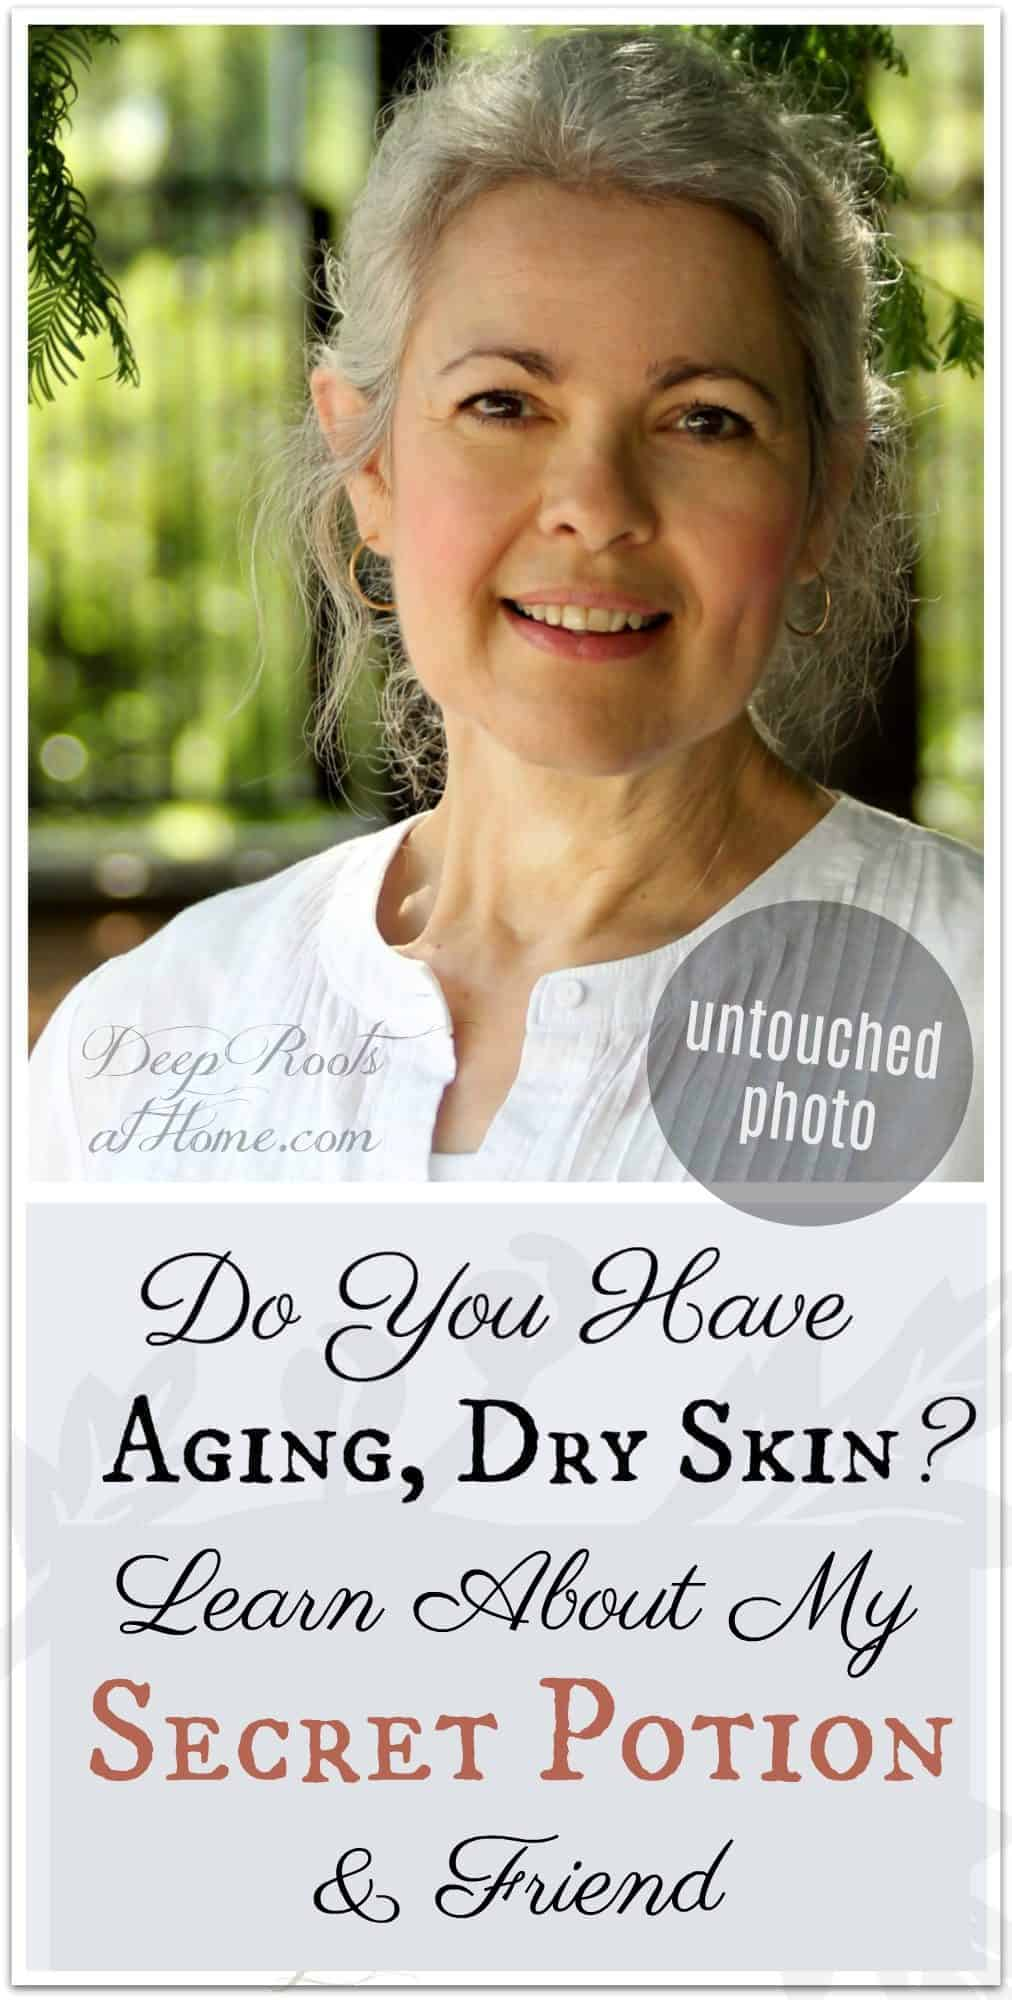 Do You Have Aging, Dry Skin? Introducing My Secret Potion & Friend. aging